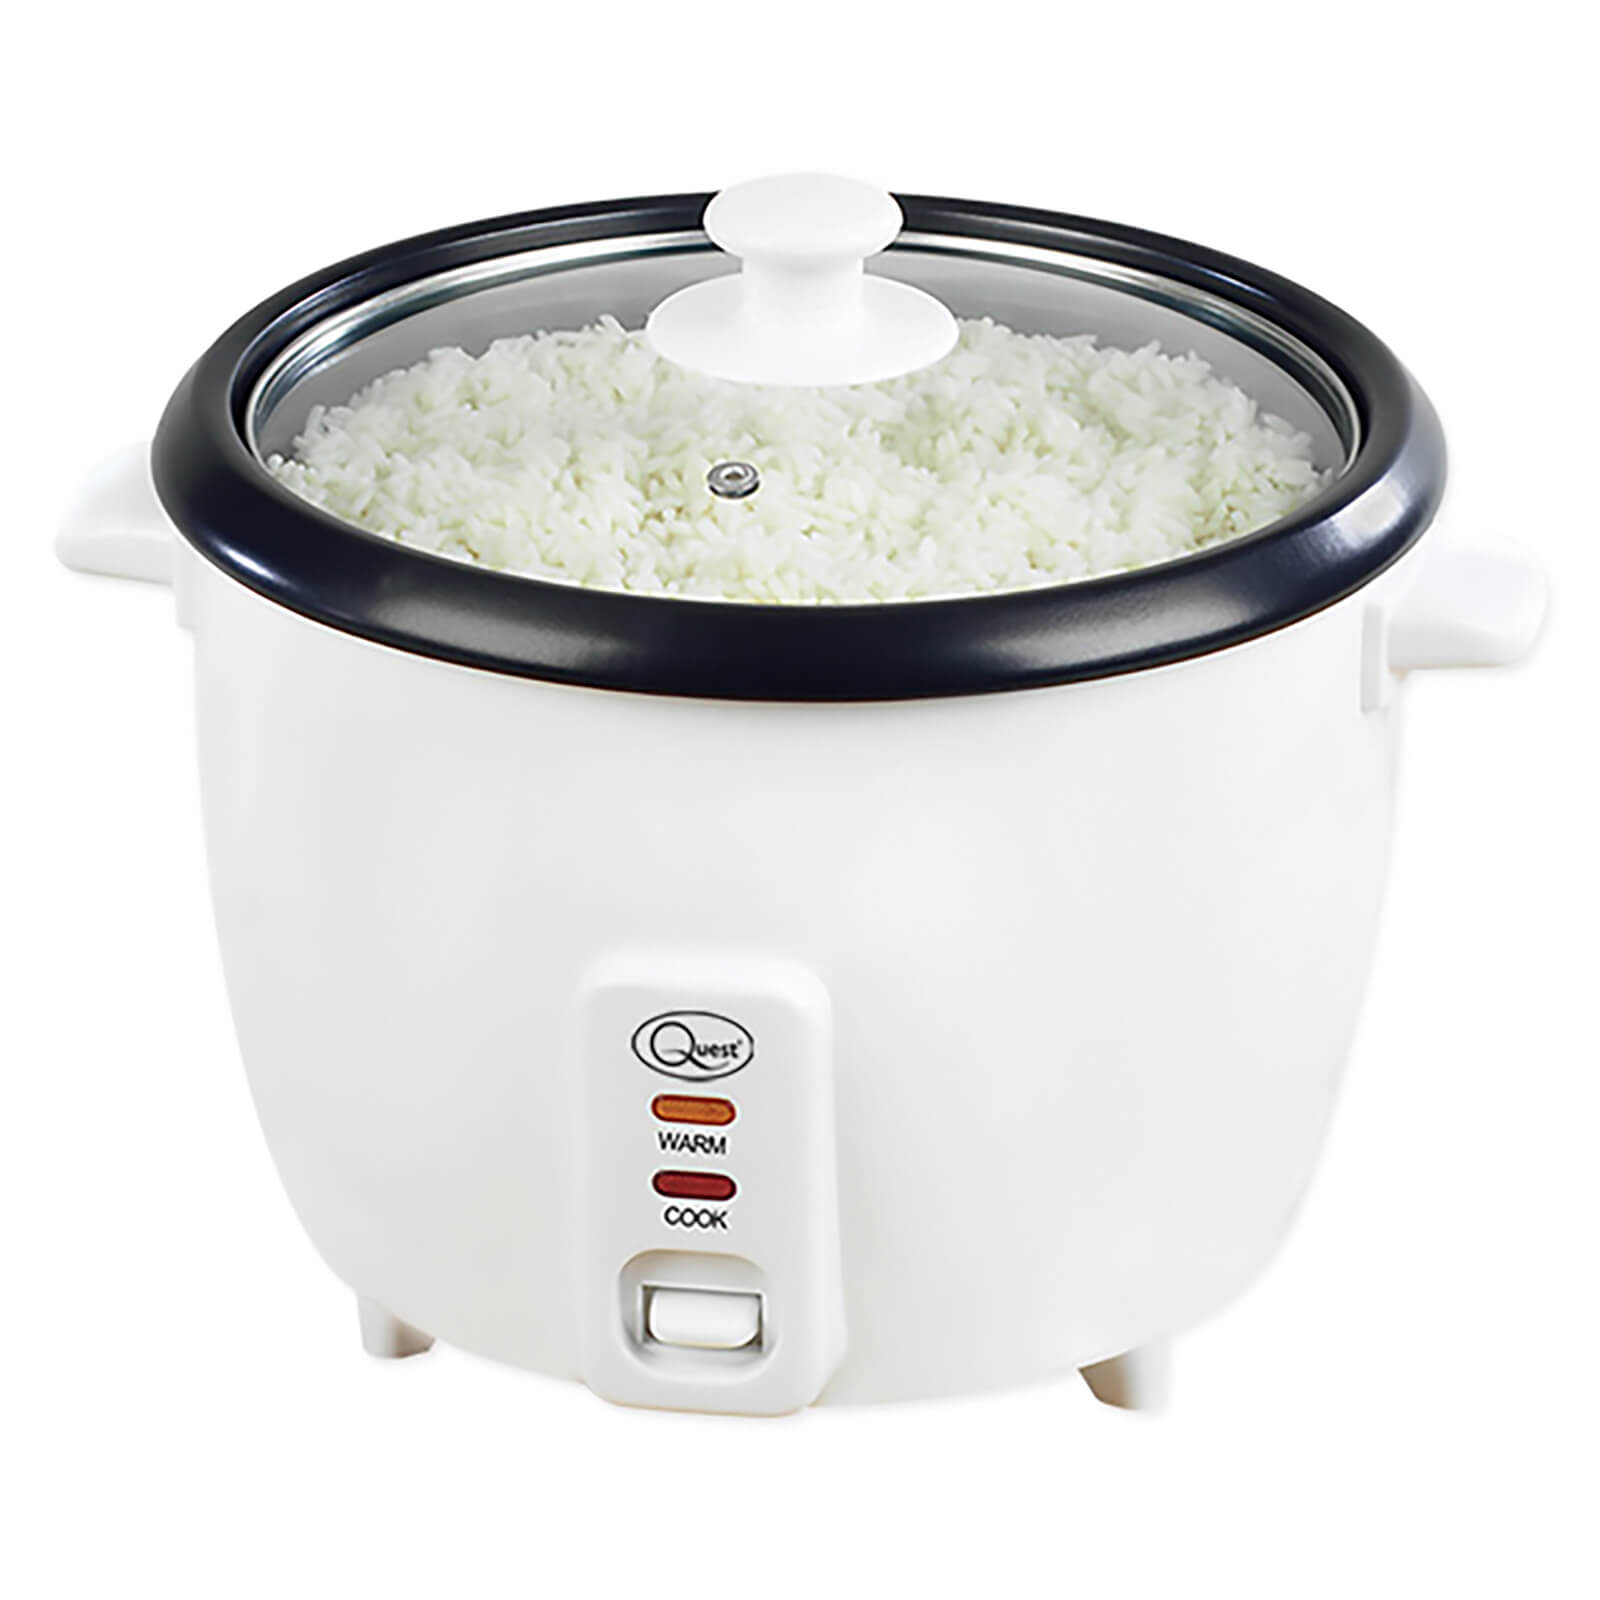 Quest 0.8L Rice Cooker 350W